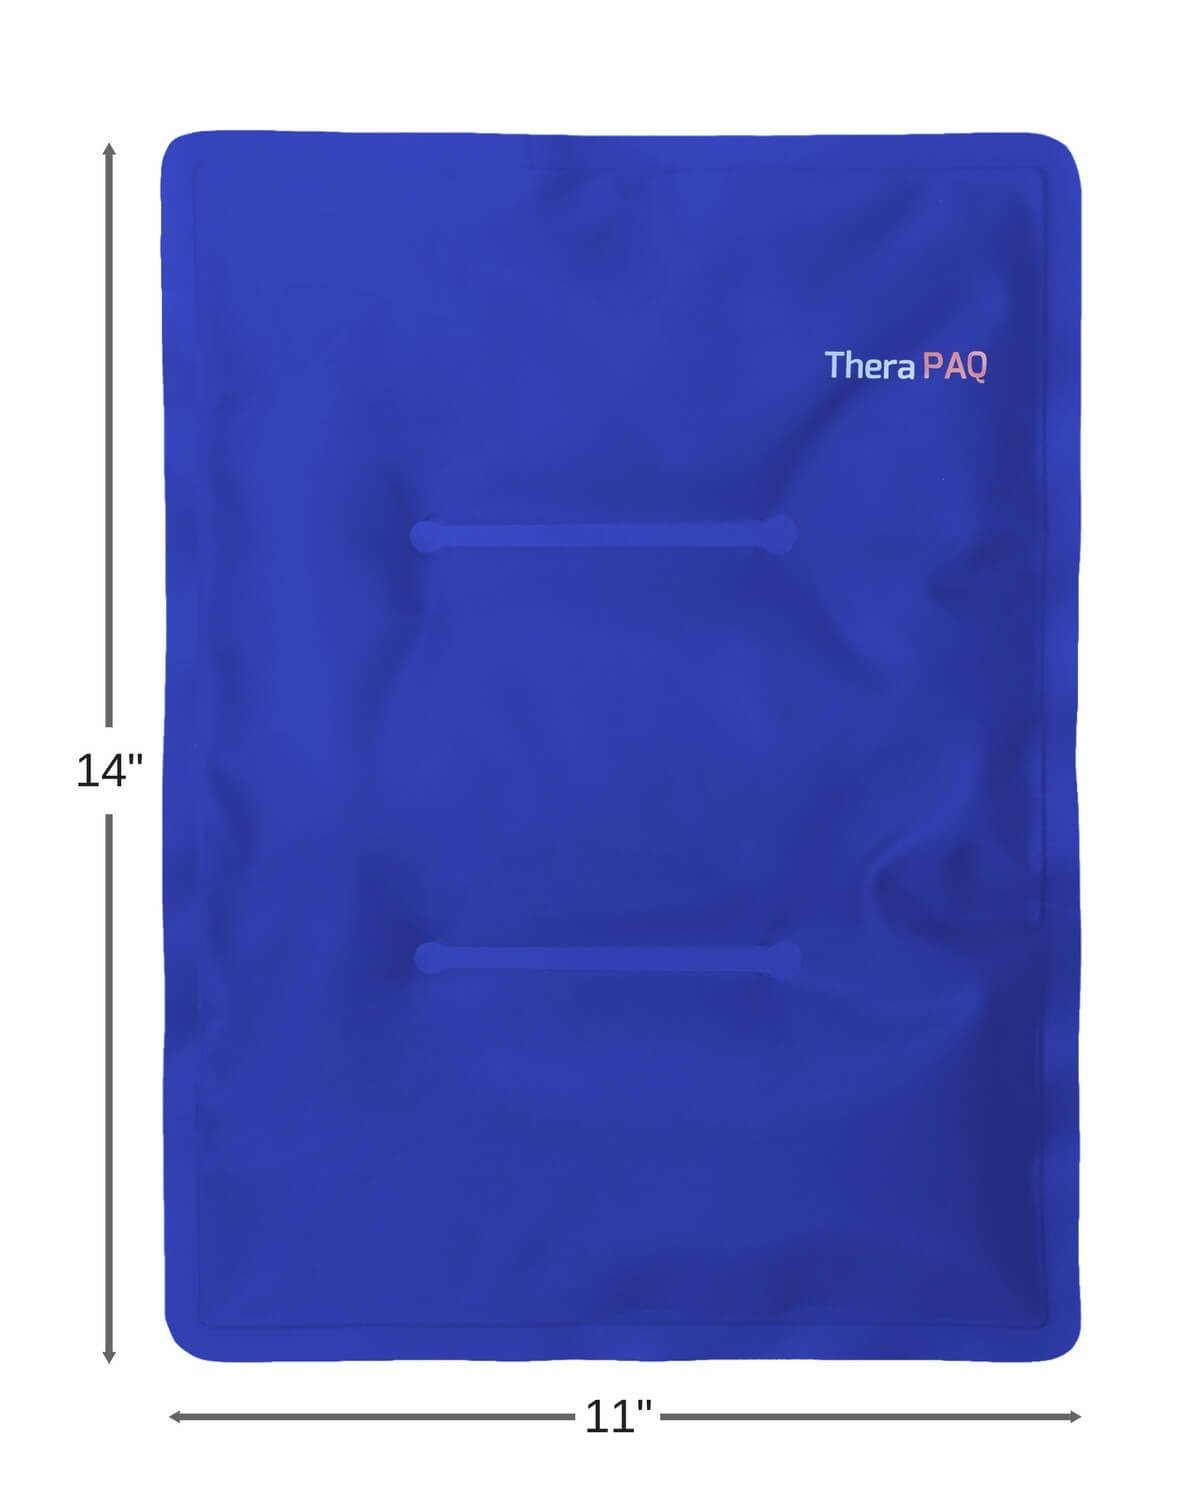 Large Gel Ice Pack by TheraPAQ: Reusable Hot & Cold Pack for Your Hips, Shoulders, Back, Arms, Legs, Knees - Refreezable & Microwavable Gel Pad for Pain Relief & Faster Injury Recovery